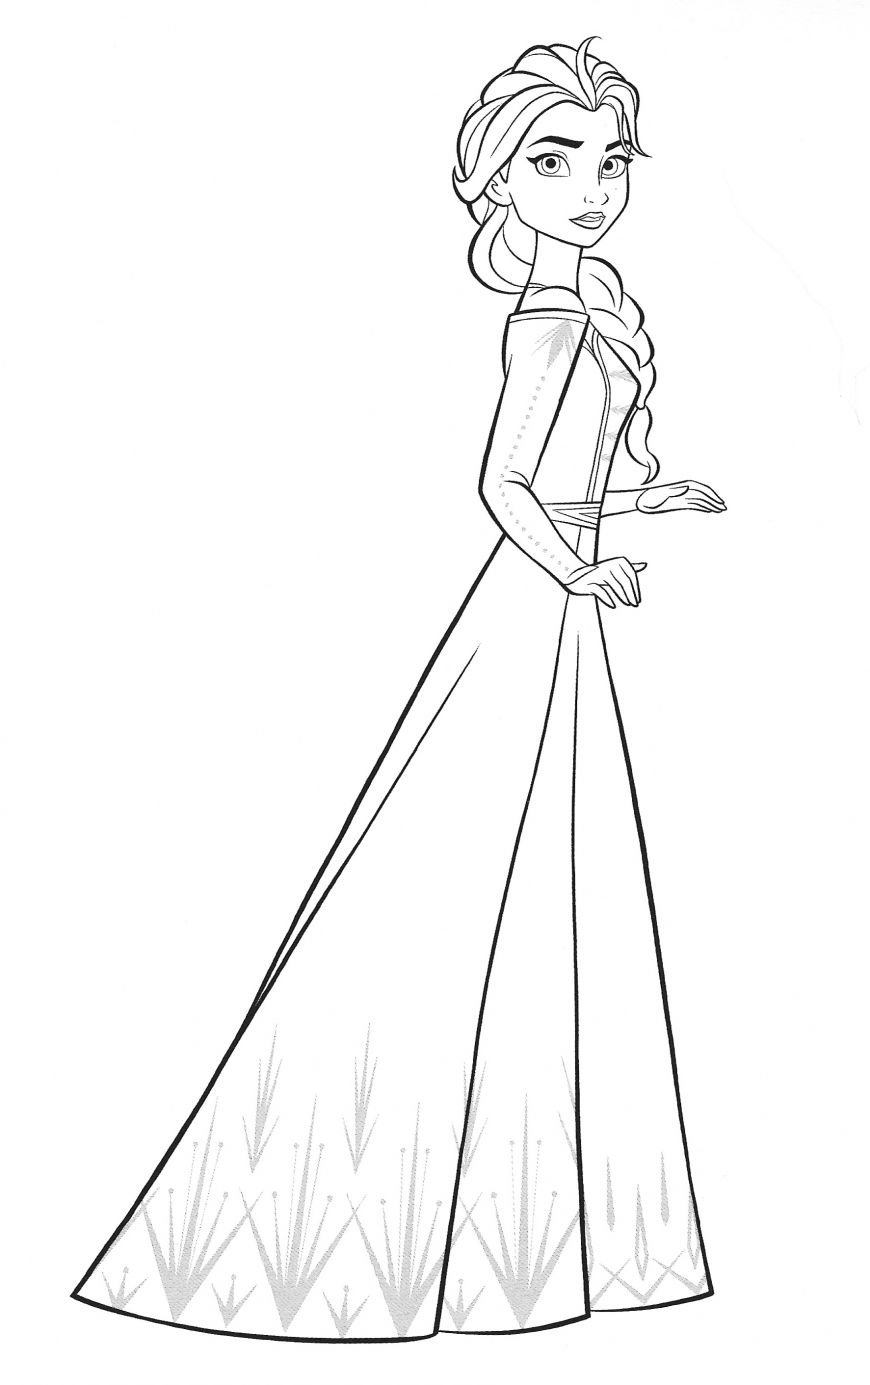 Frozen 30 free coloring pages with Elsa  디즈니 공주 색칠하기